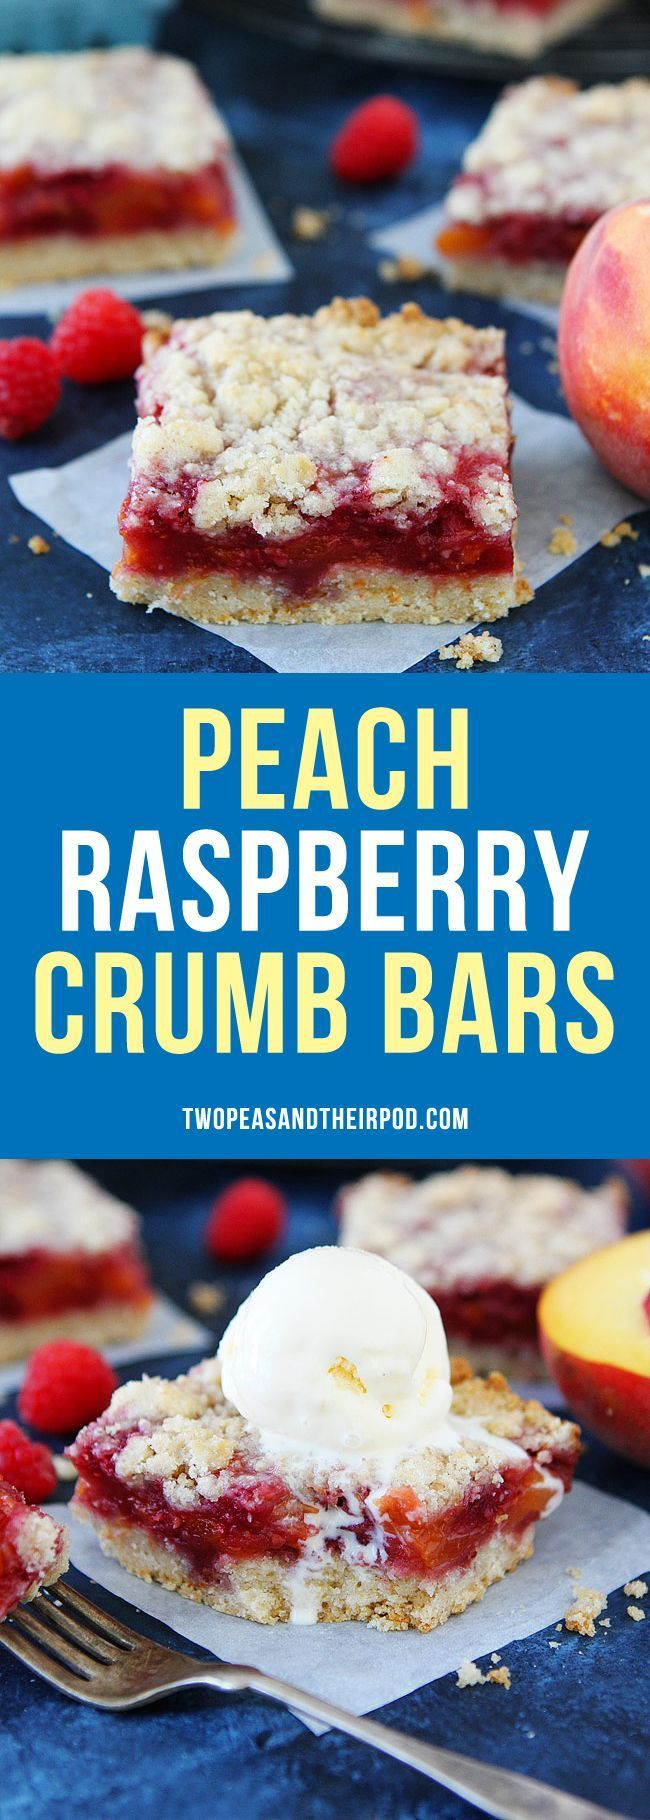 Peach Raspberry Crumb Bars have a buttery crust, sweet fruit filling, and delicious crumb topping. These easy pie bars are a favorite summer dessert, especially when topped with vanilla ice cream!